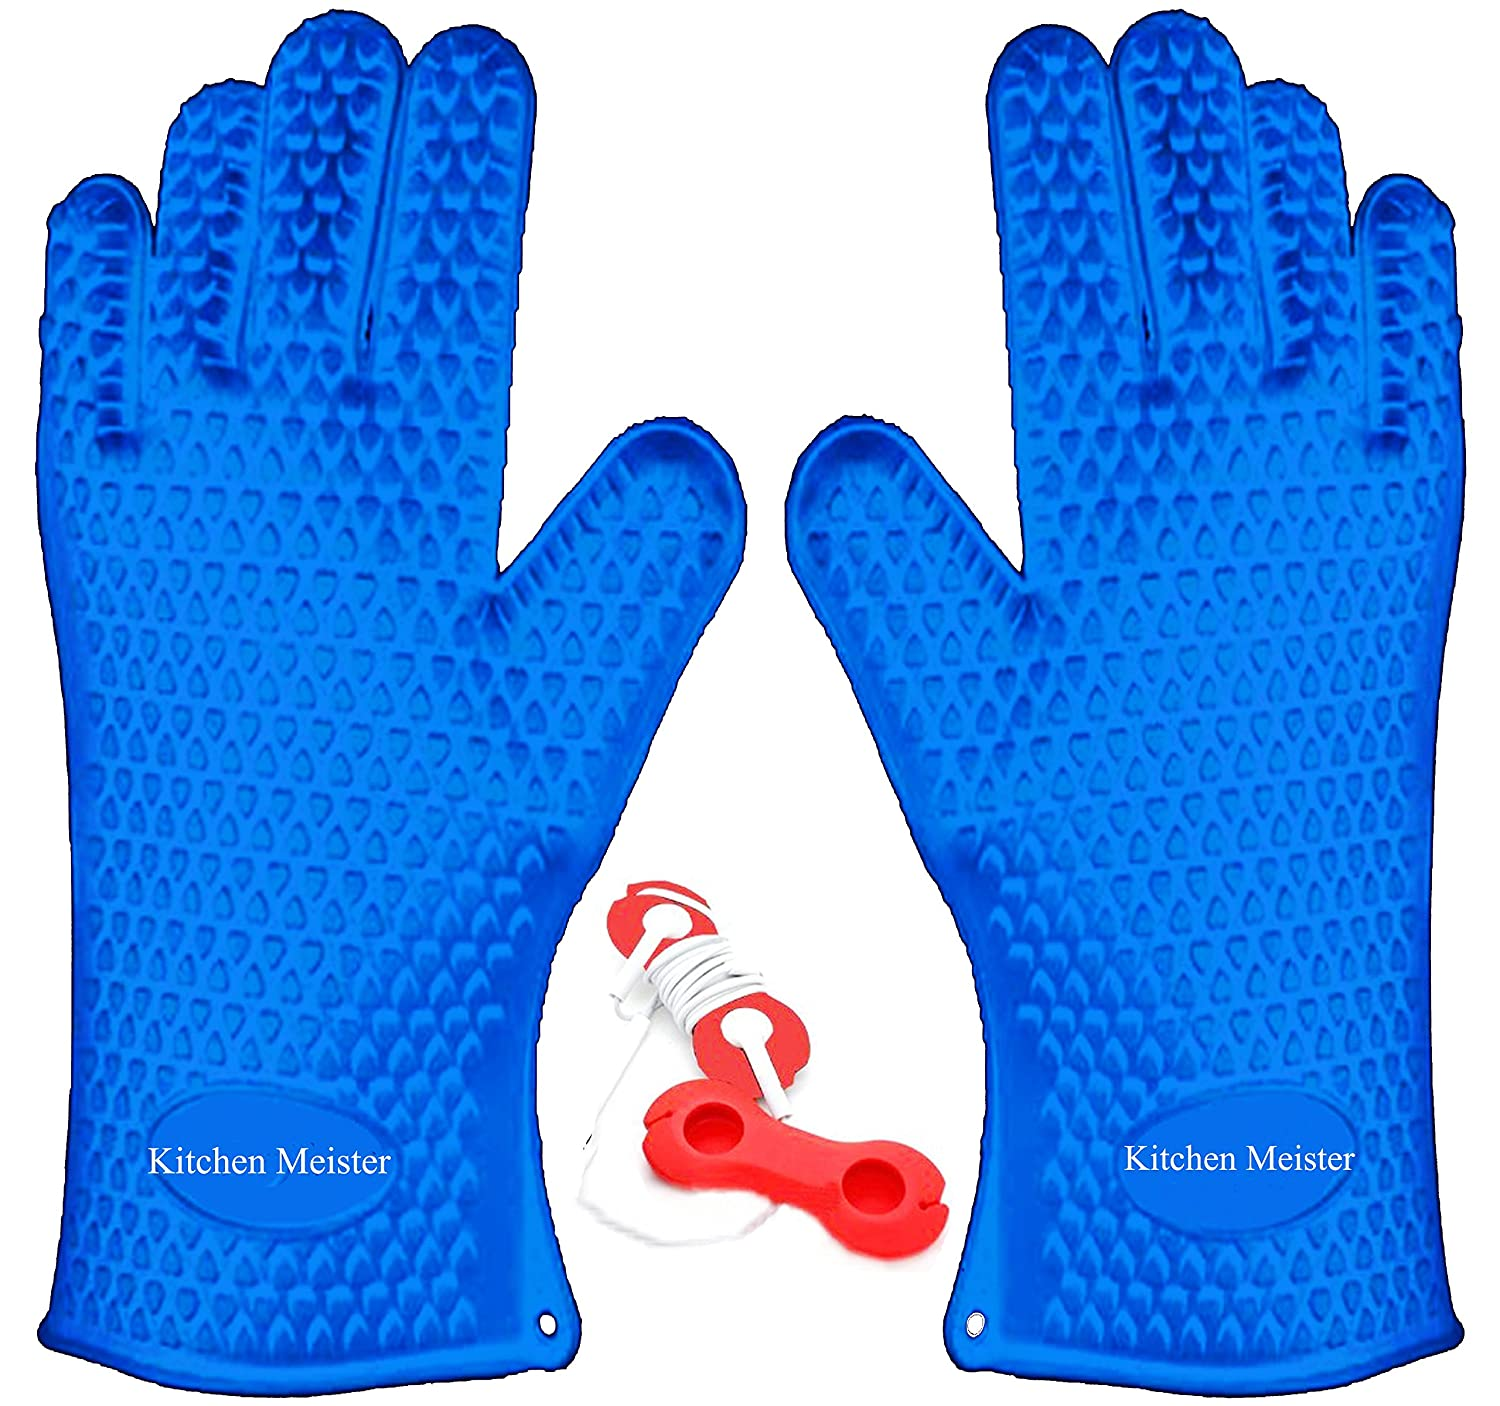 Silicone Oven, BBQ Grill, Cooking and Pot Holder Heat Resistant Gloves; Set of 2, Blue, Includes 1 Silicone Earphone Winder Kitchen Meister 50232